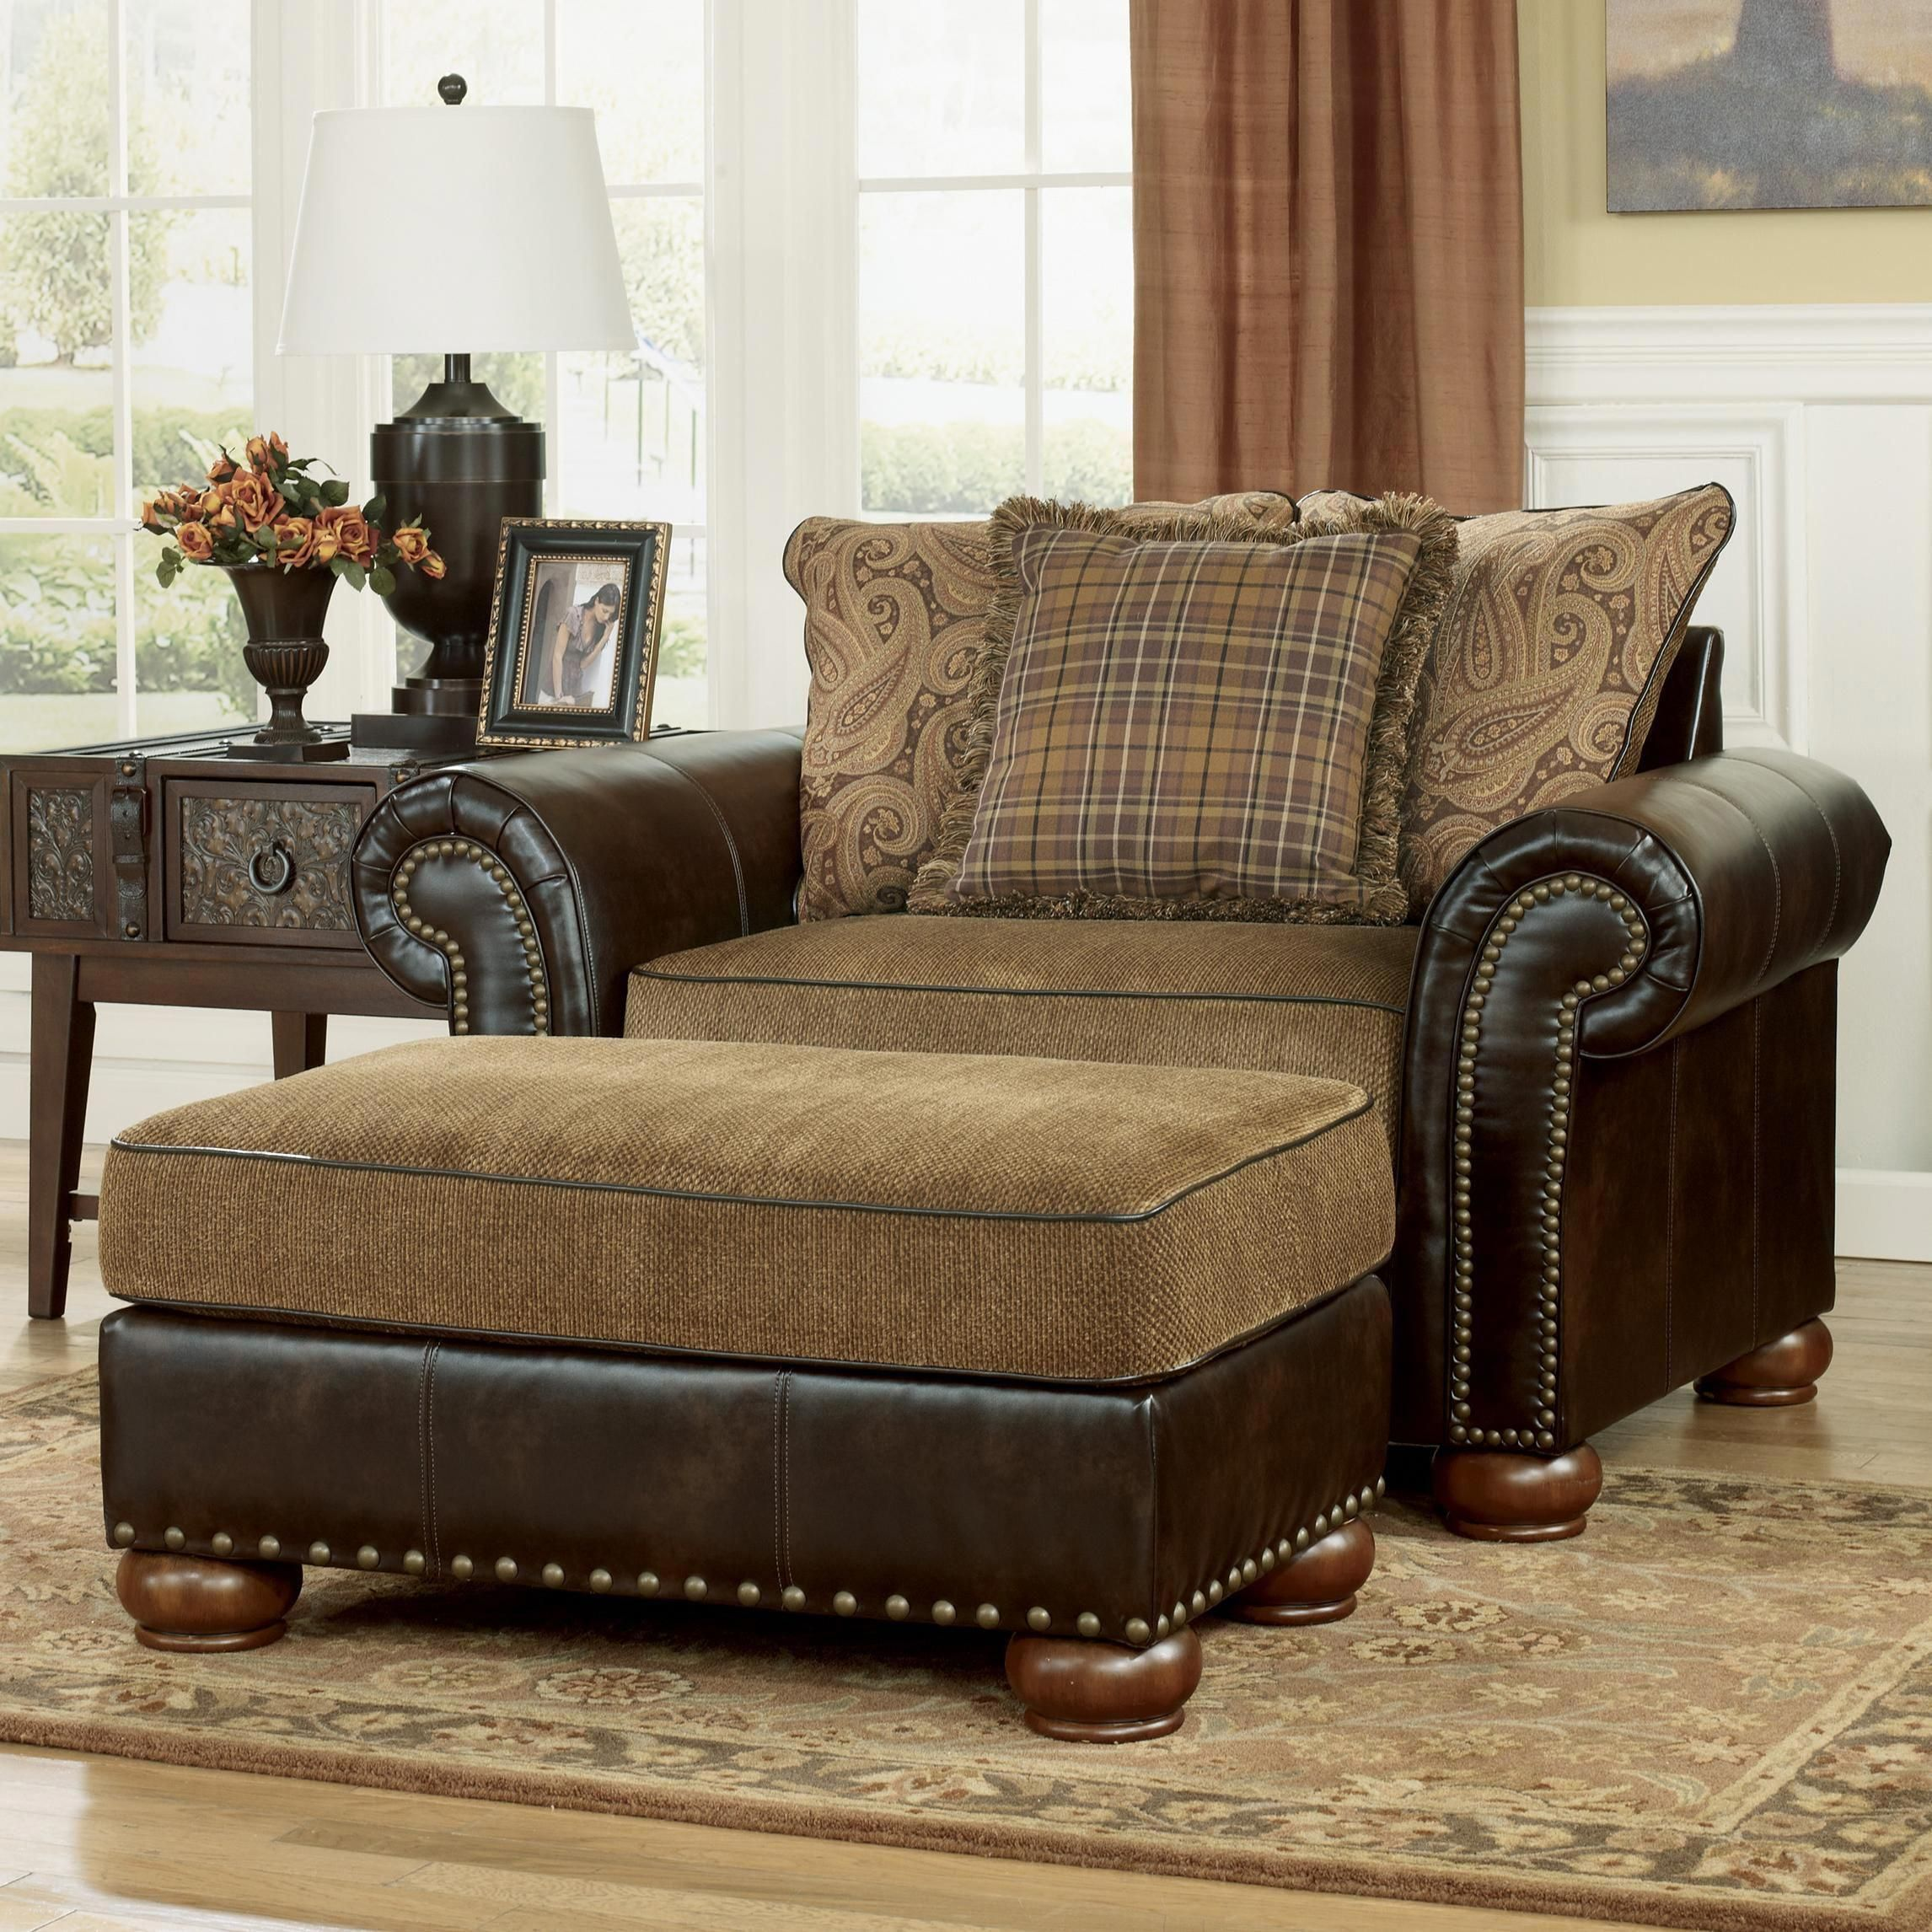 UpholsteredSwivelChairs Chair and a half, Furniture